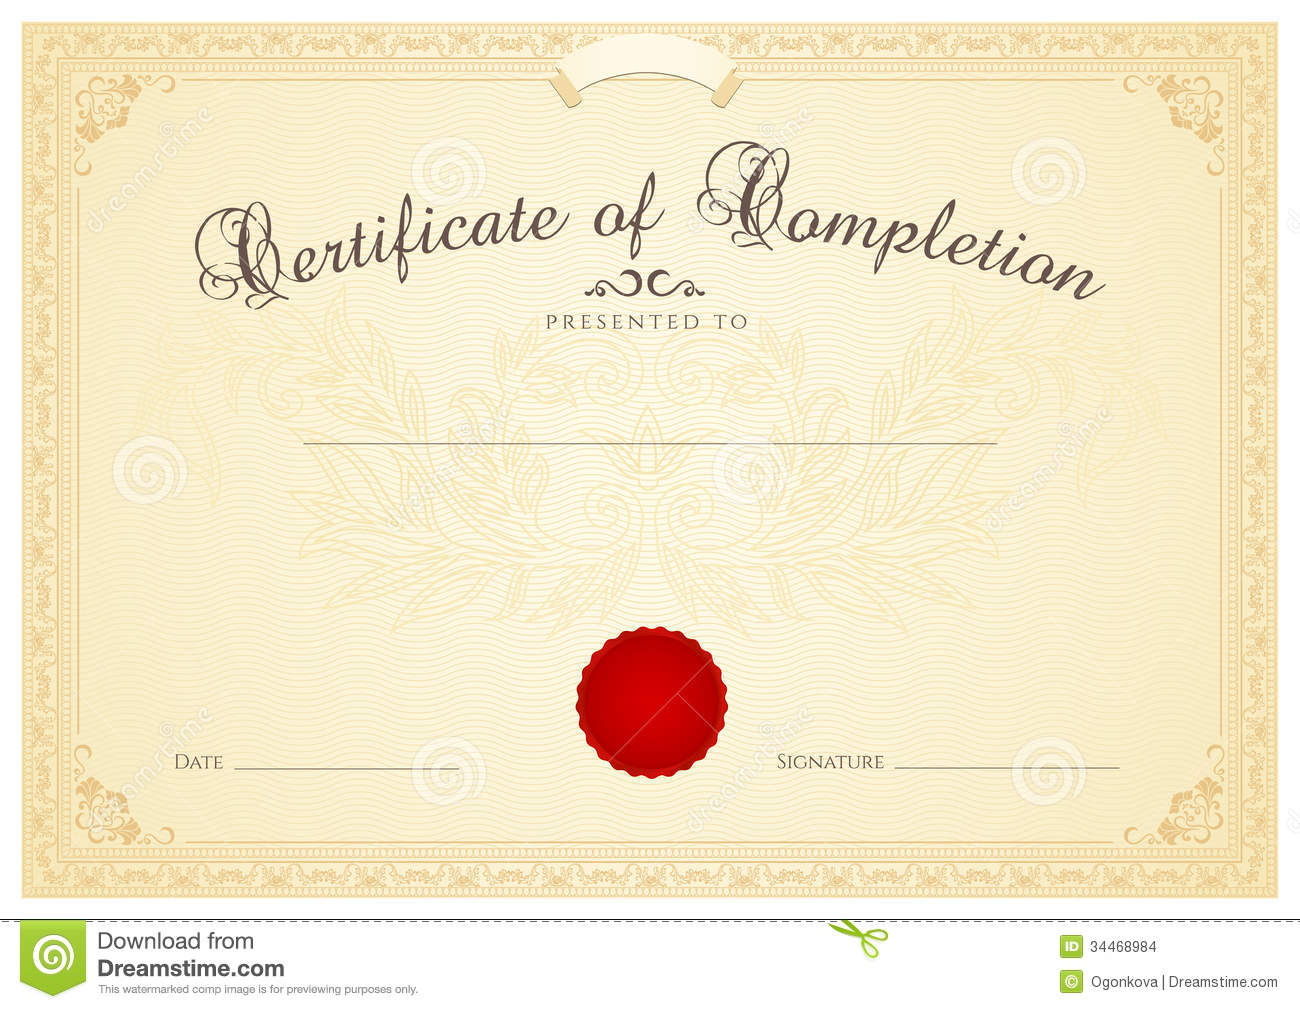 Certificate scroll template asafonec certificate scroll template alramifo Images